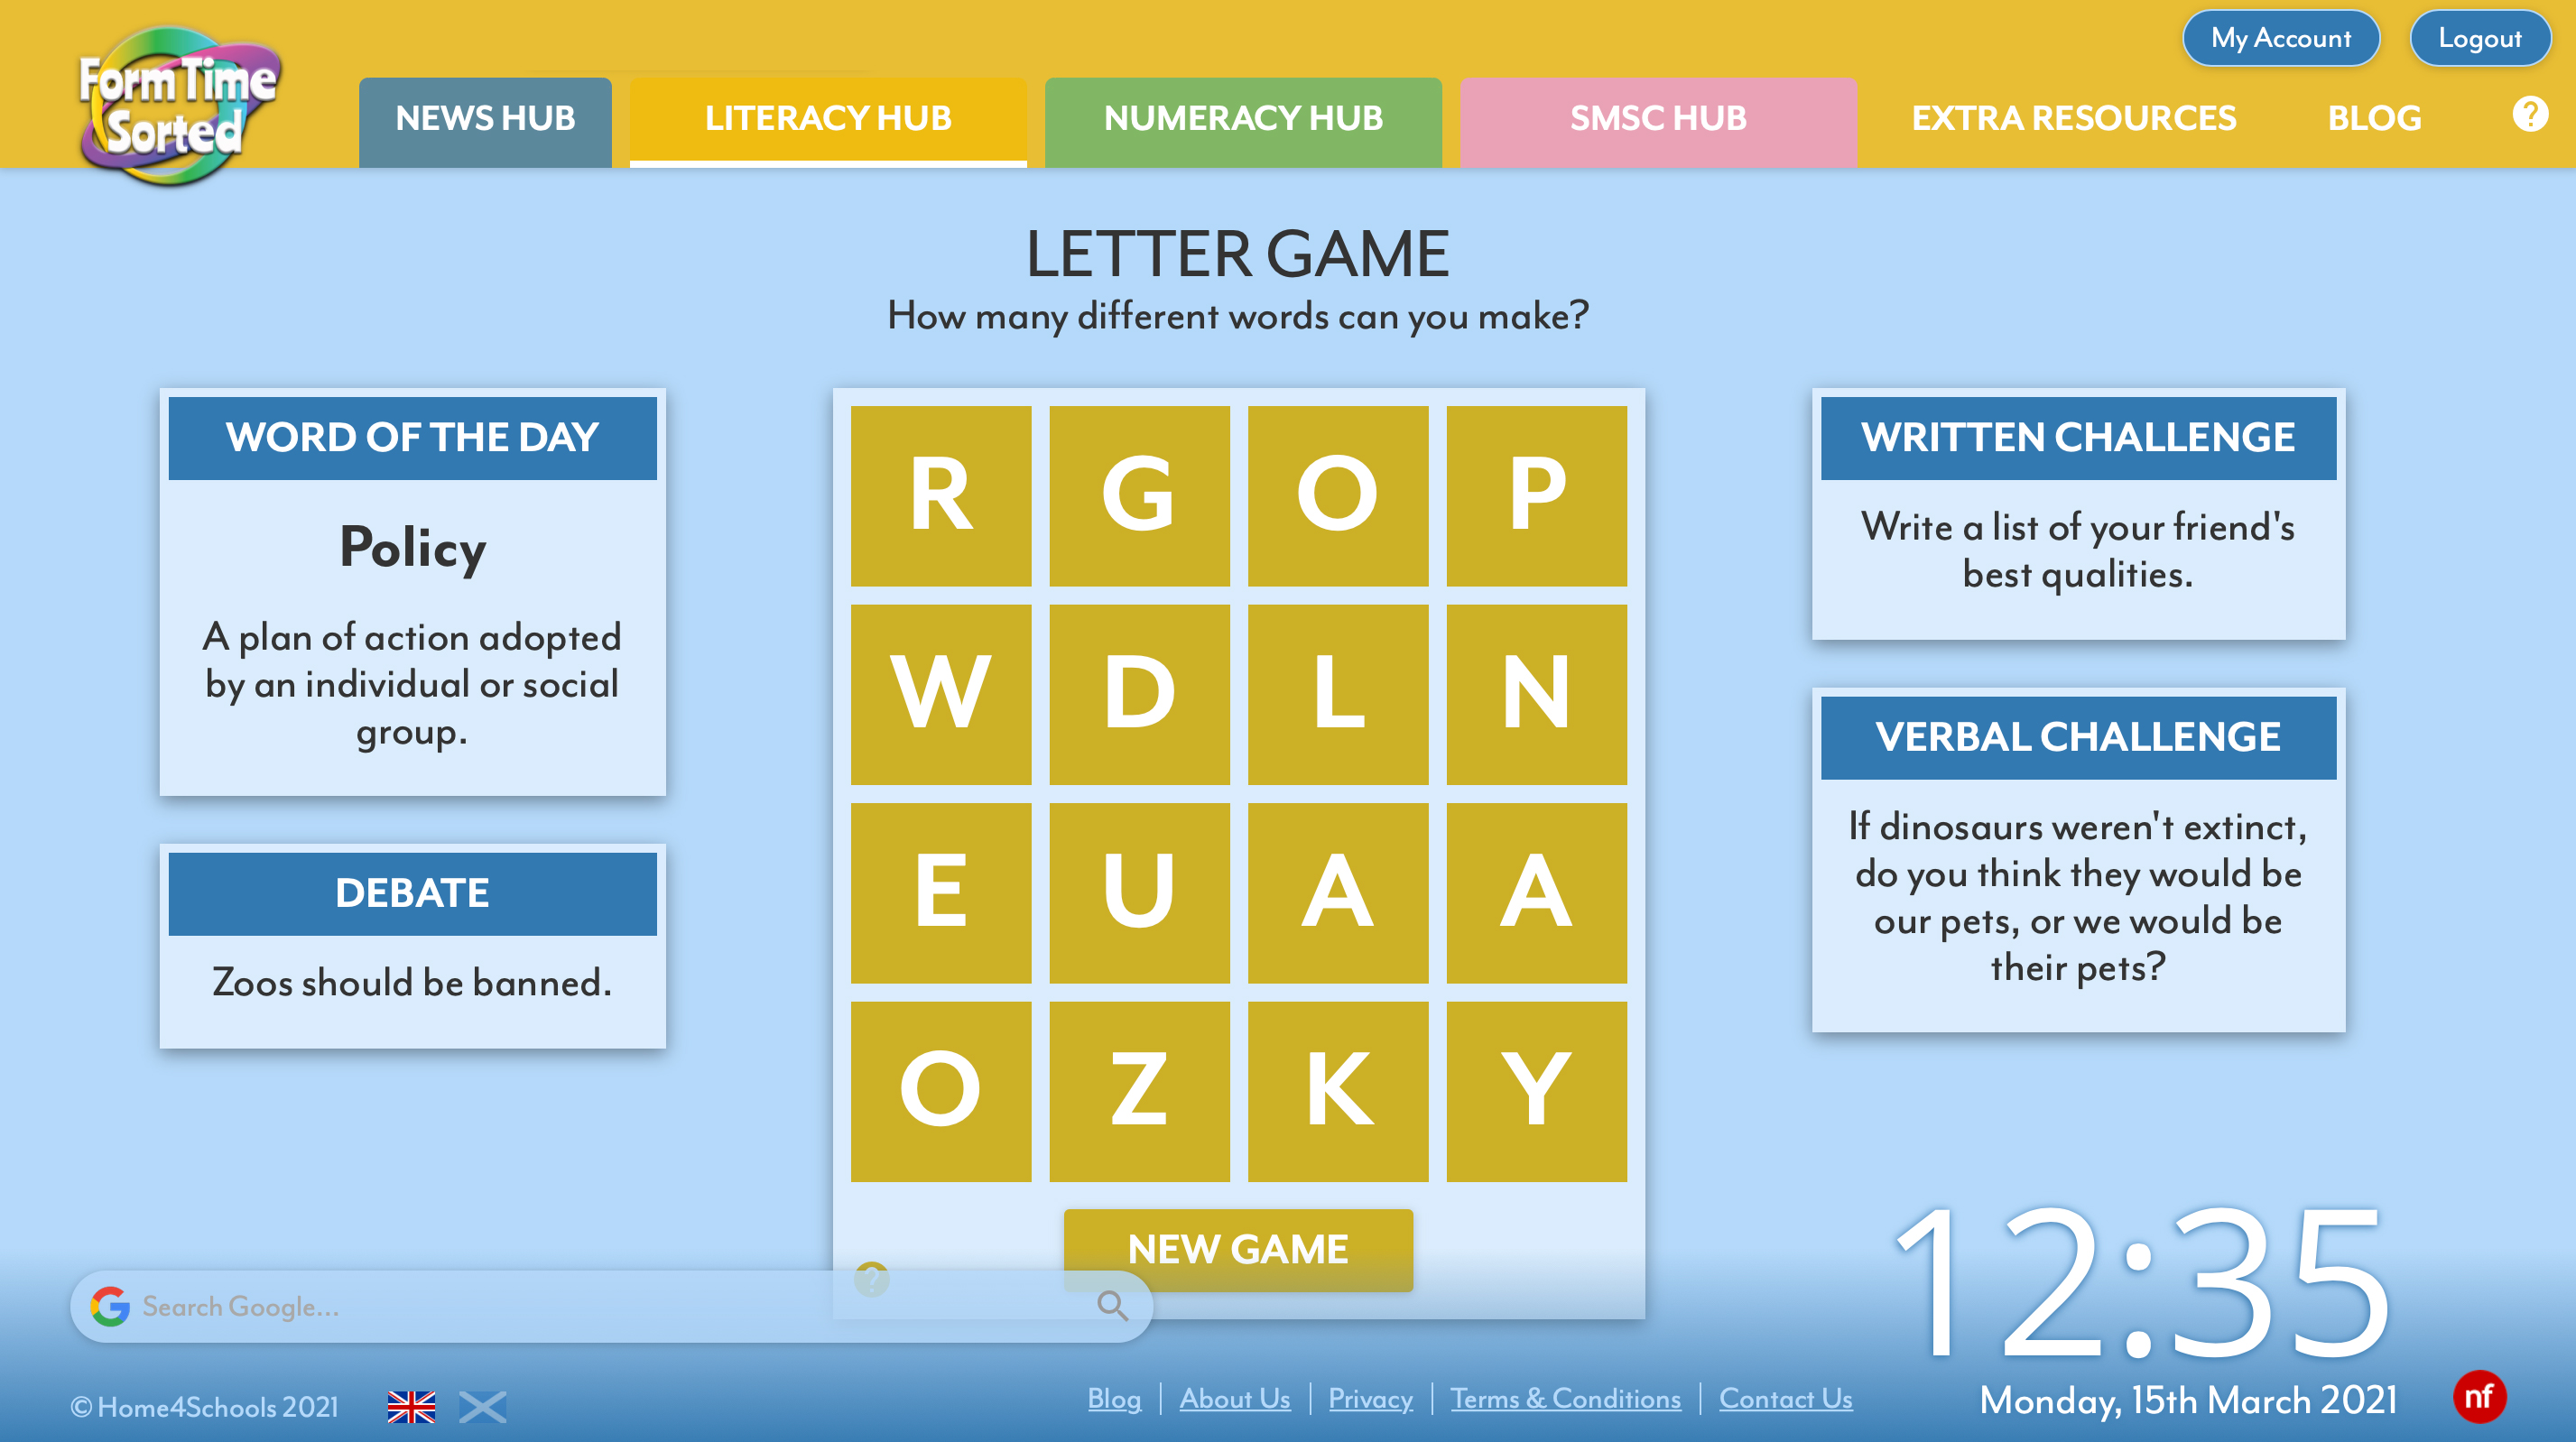 Literacy Hub Screenshot